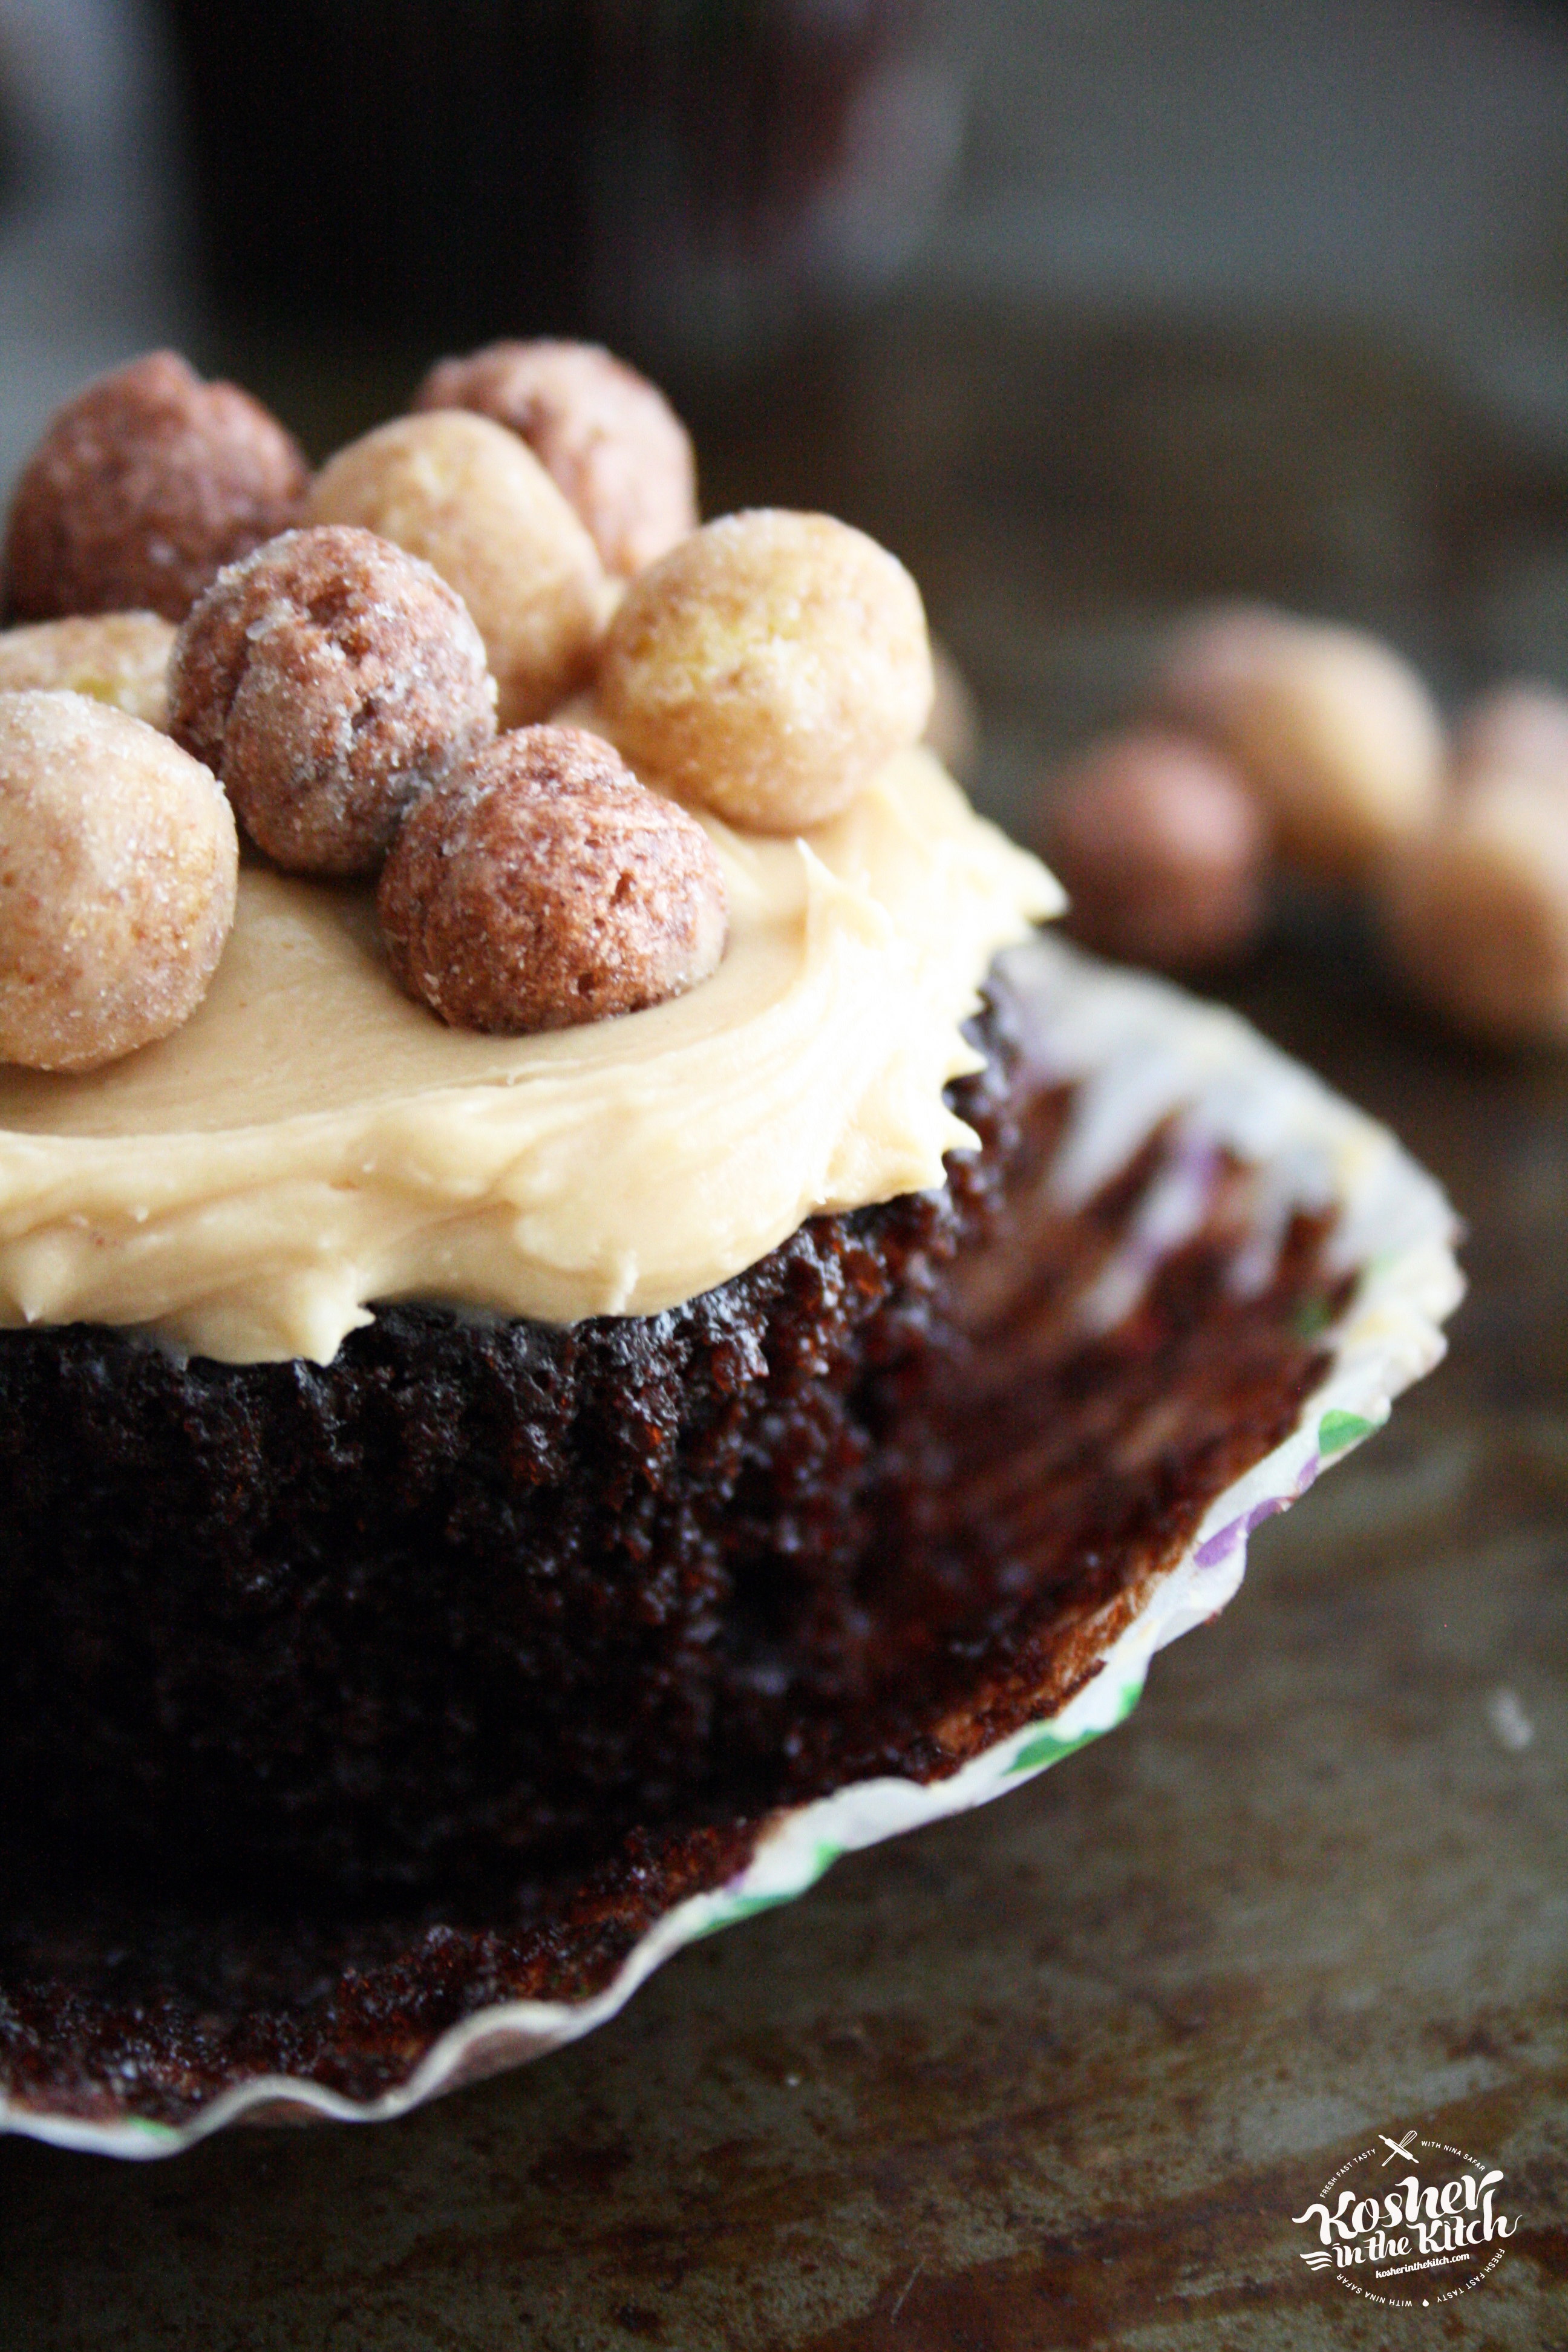 Chocolate Cupcake with Peanut Butter Frosting topped with Reese's Puffs Cereal